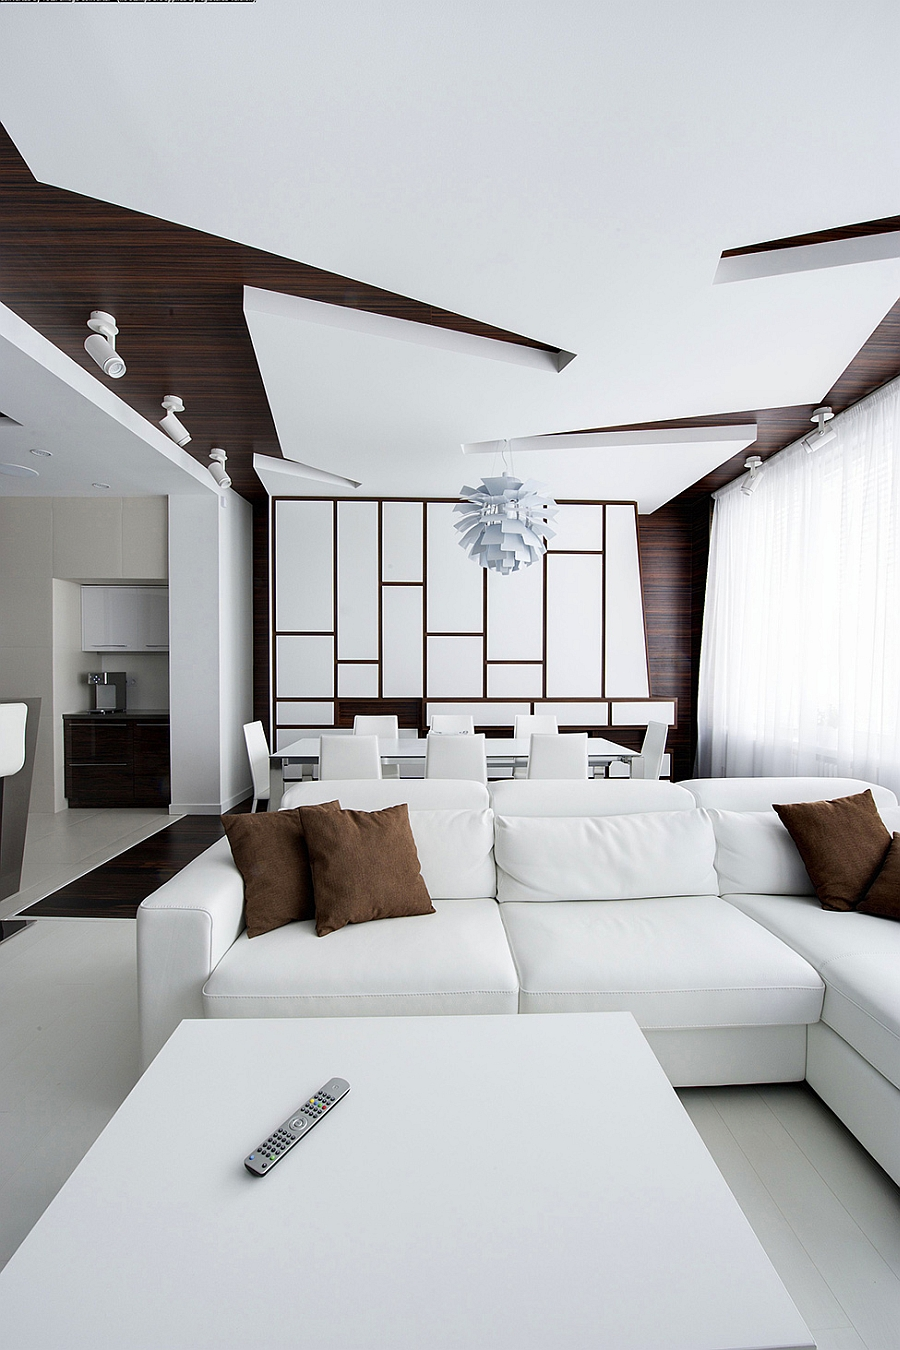 Stylish sectional sofa with the dining area behind it